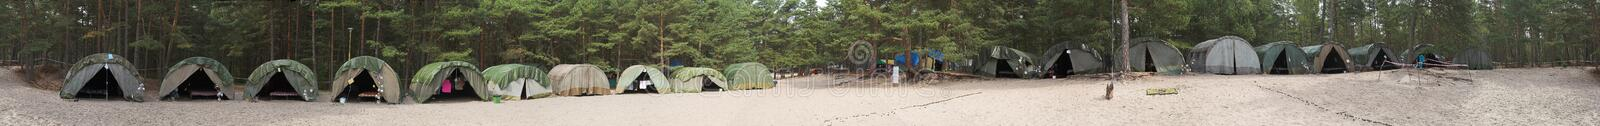 Download Scout campsite stock image. Image of activity, organization - 1417049